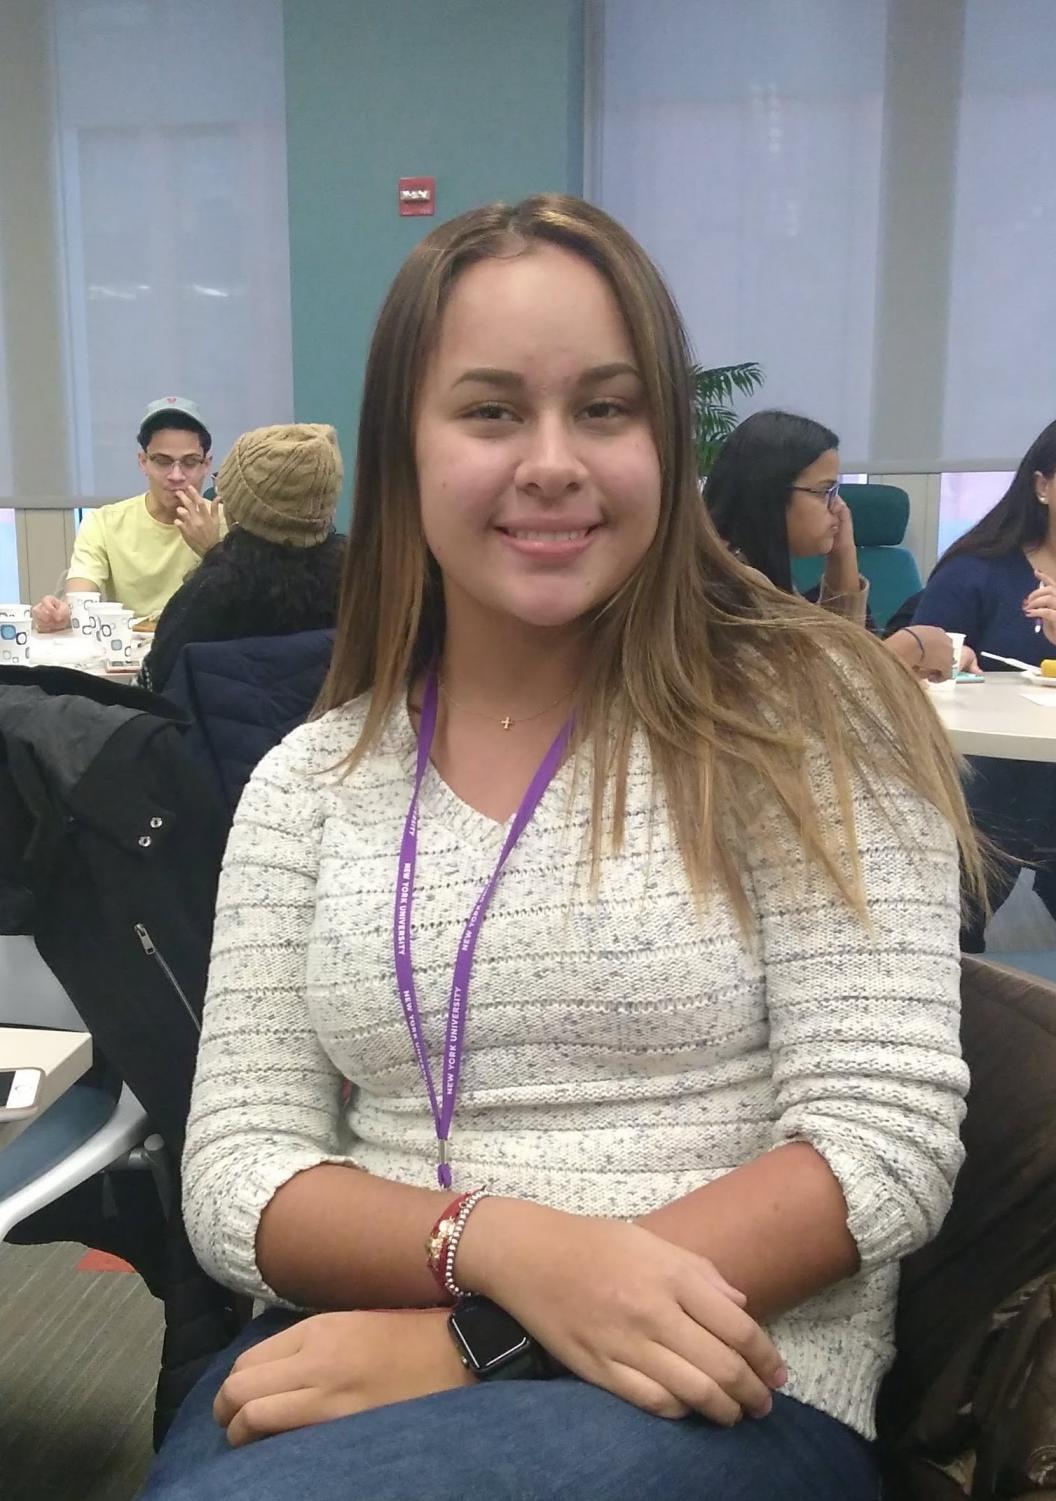 Salome Ramirez, a CAS junior part of the Hurricane Maria Assistance Program, discusses the struggles her and her family went through during the national disaster. Ramirez continues her studies in journalism at NYU with a minor in Psychology.